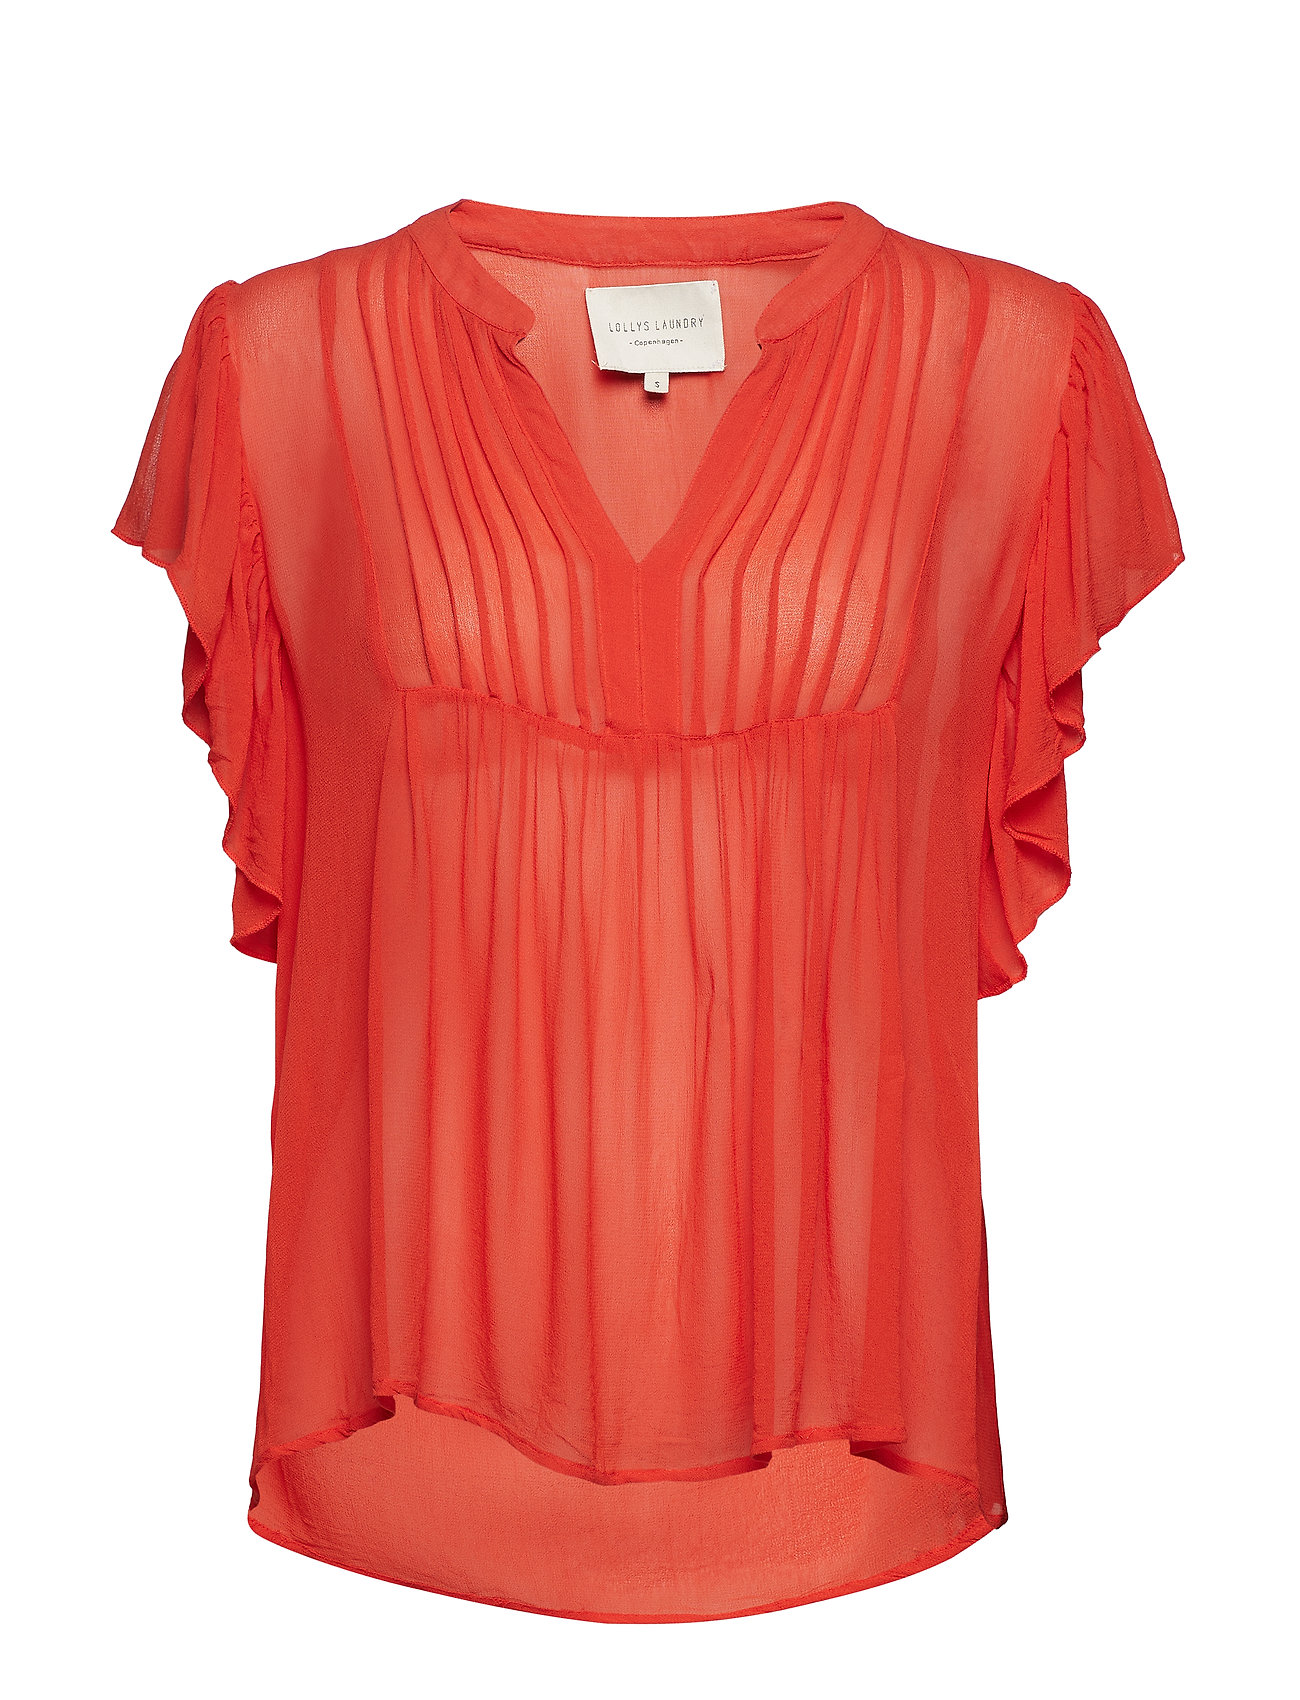 Lollys Laundry Isabel Top - ORANGE